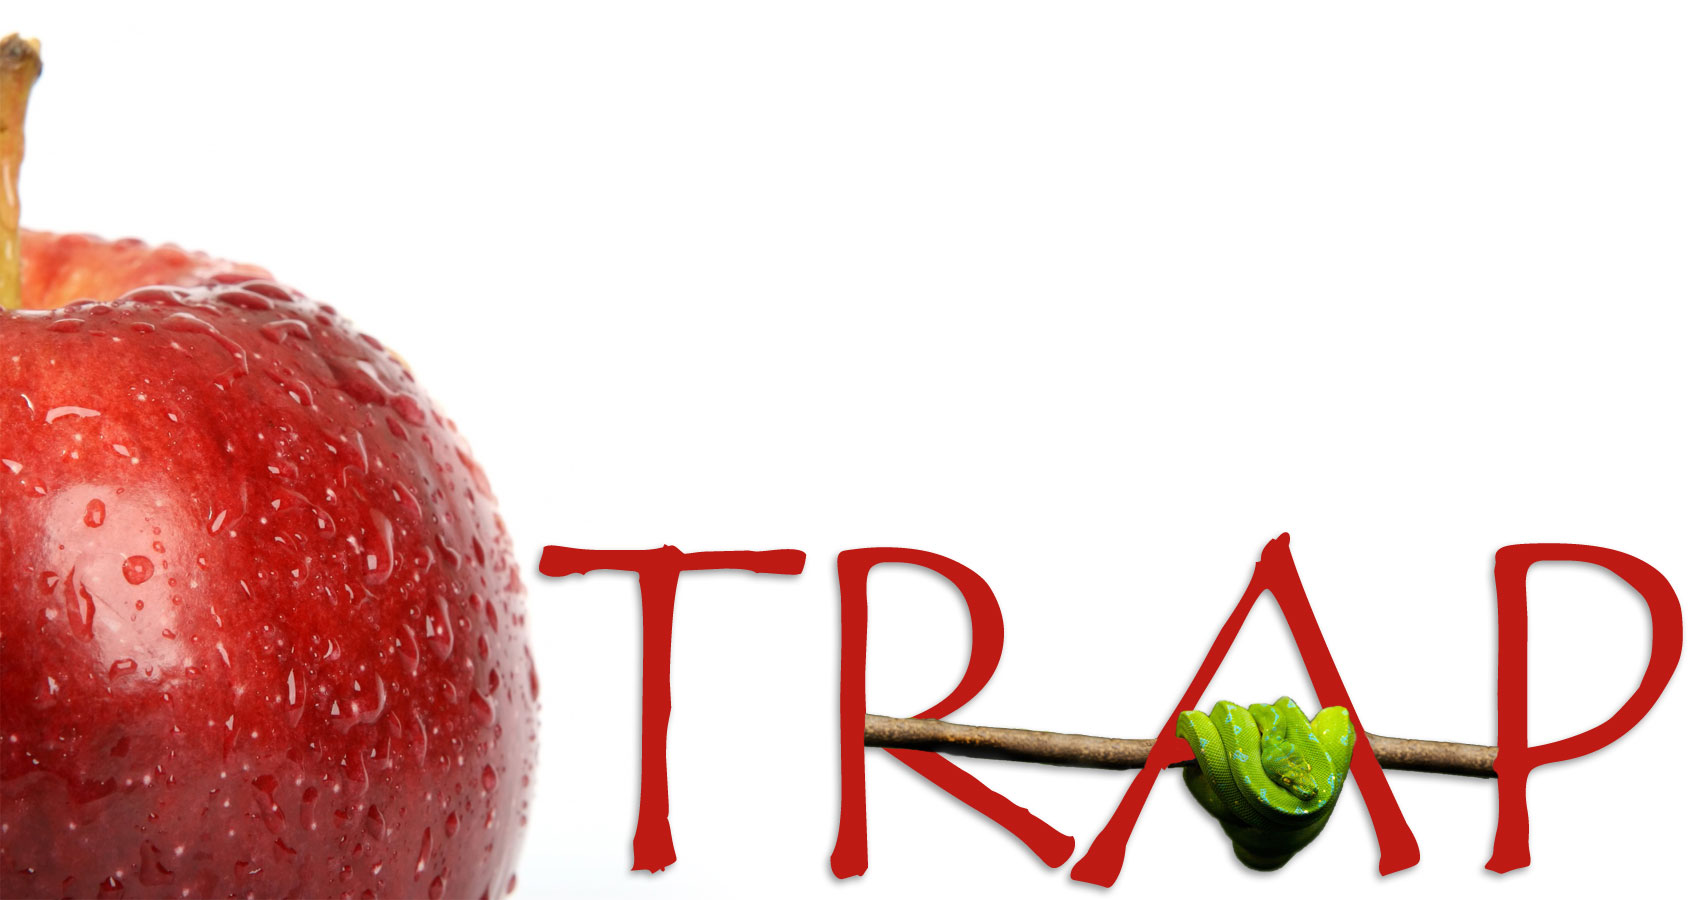 The apple trap written by Poetanp at Spillwords.com